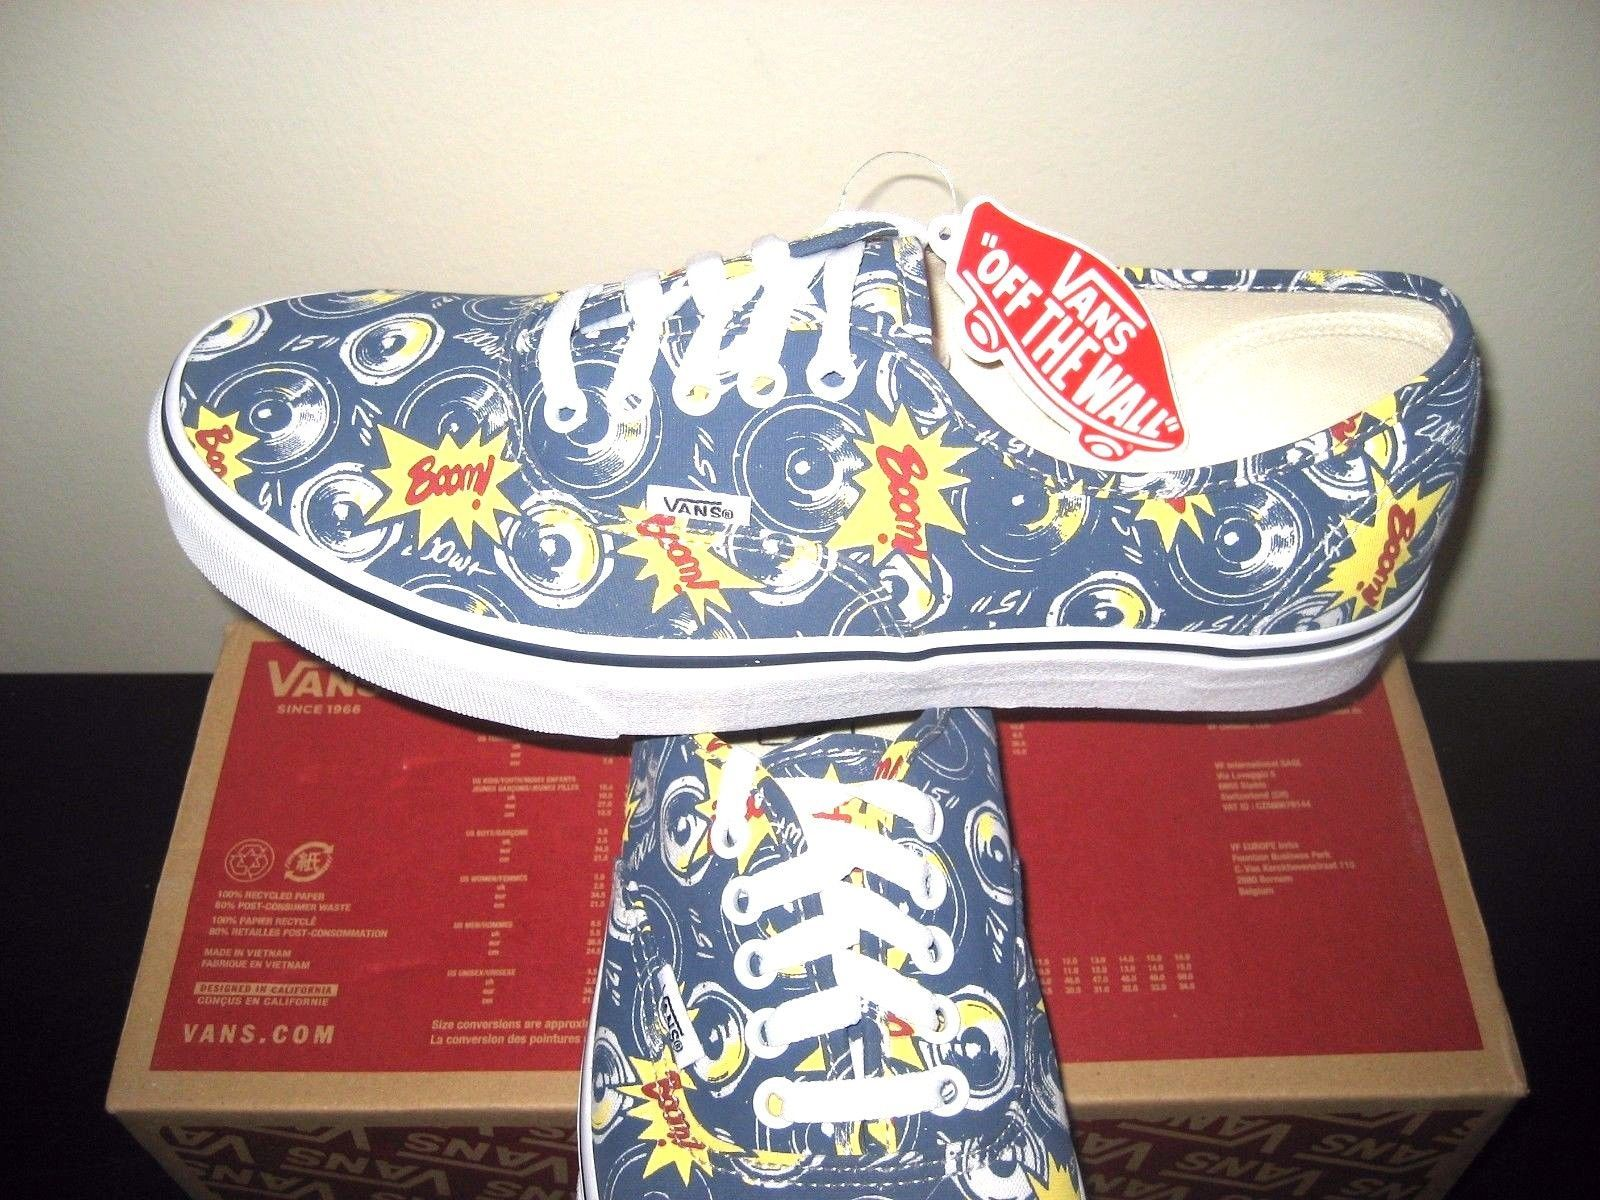 da1696b0508590 S l1600. S l1600. Vans Authentic Mens Freshness Boom City Blue True White  Canvas shoes Size ...